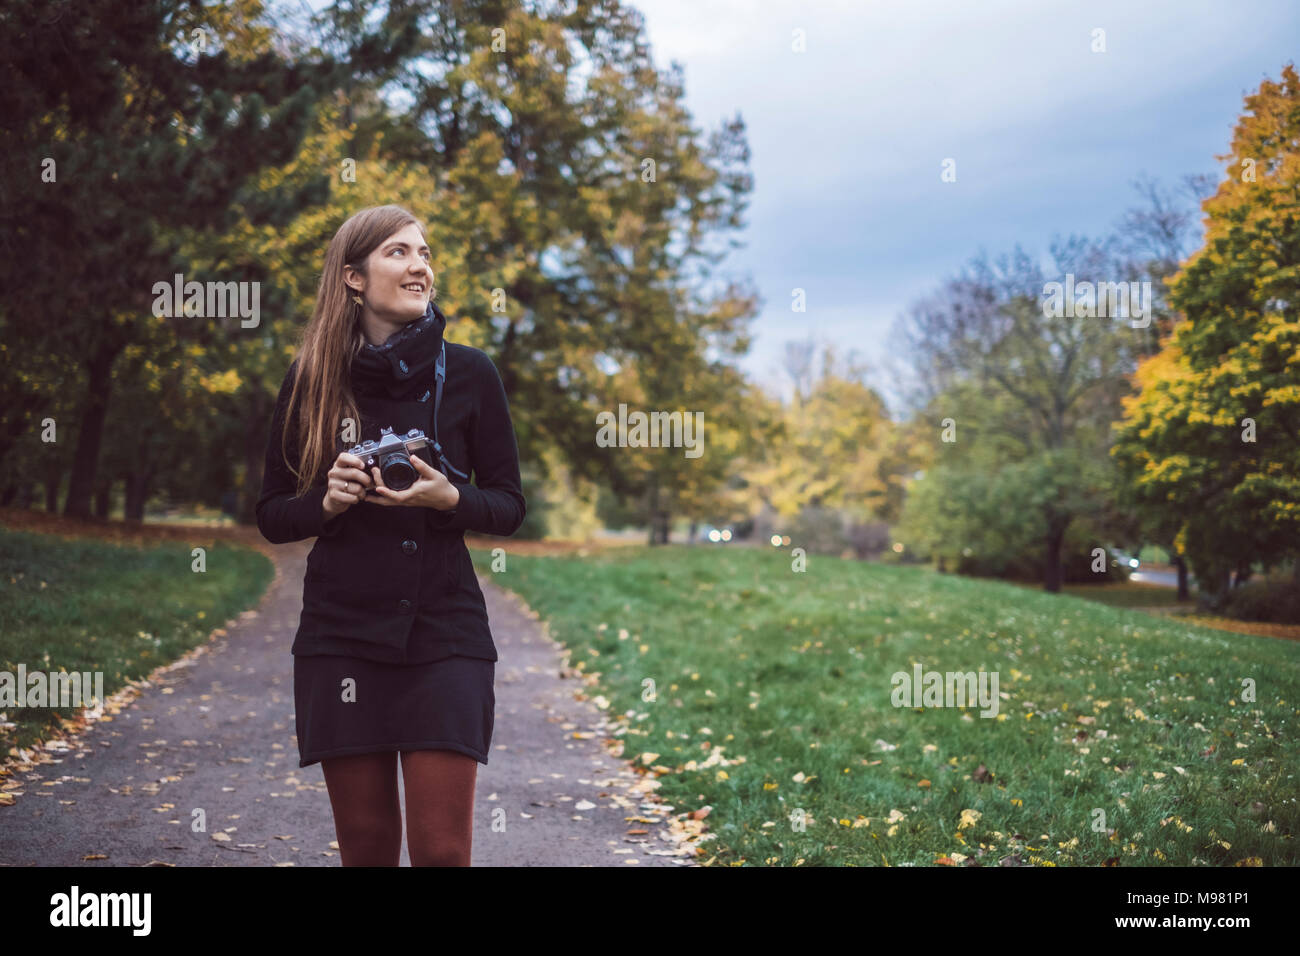 Young woman with camera walking in autumnal park - Stock Image